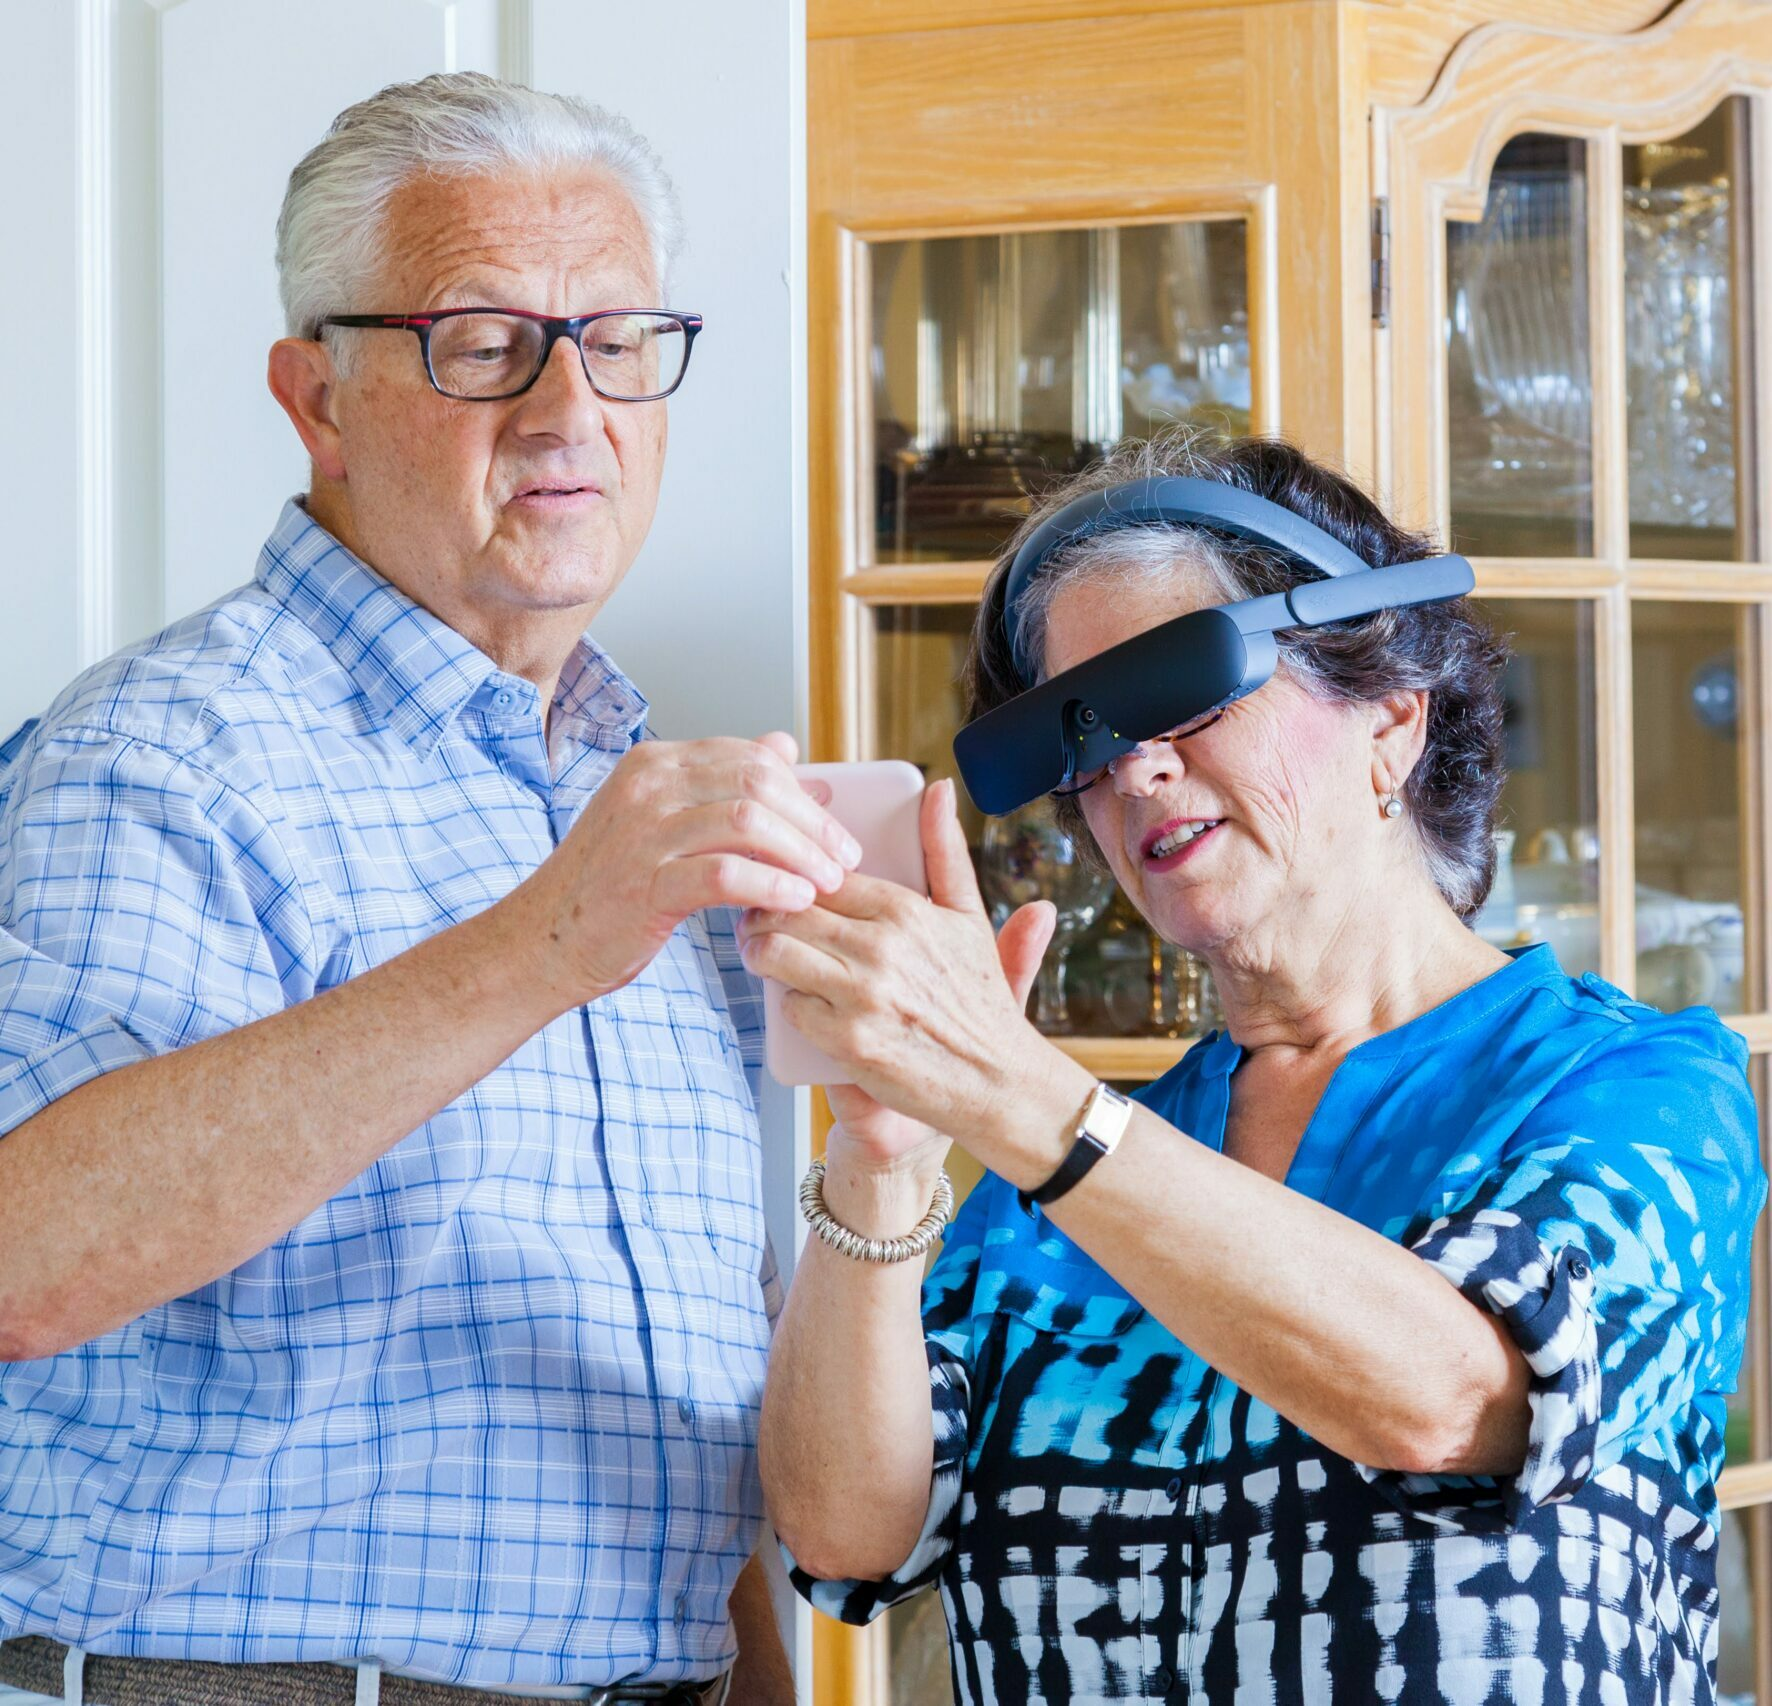 An elderly couple looking at their phone